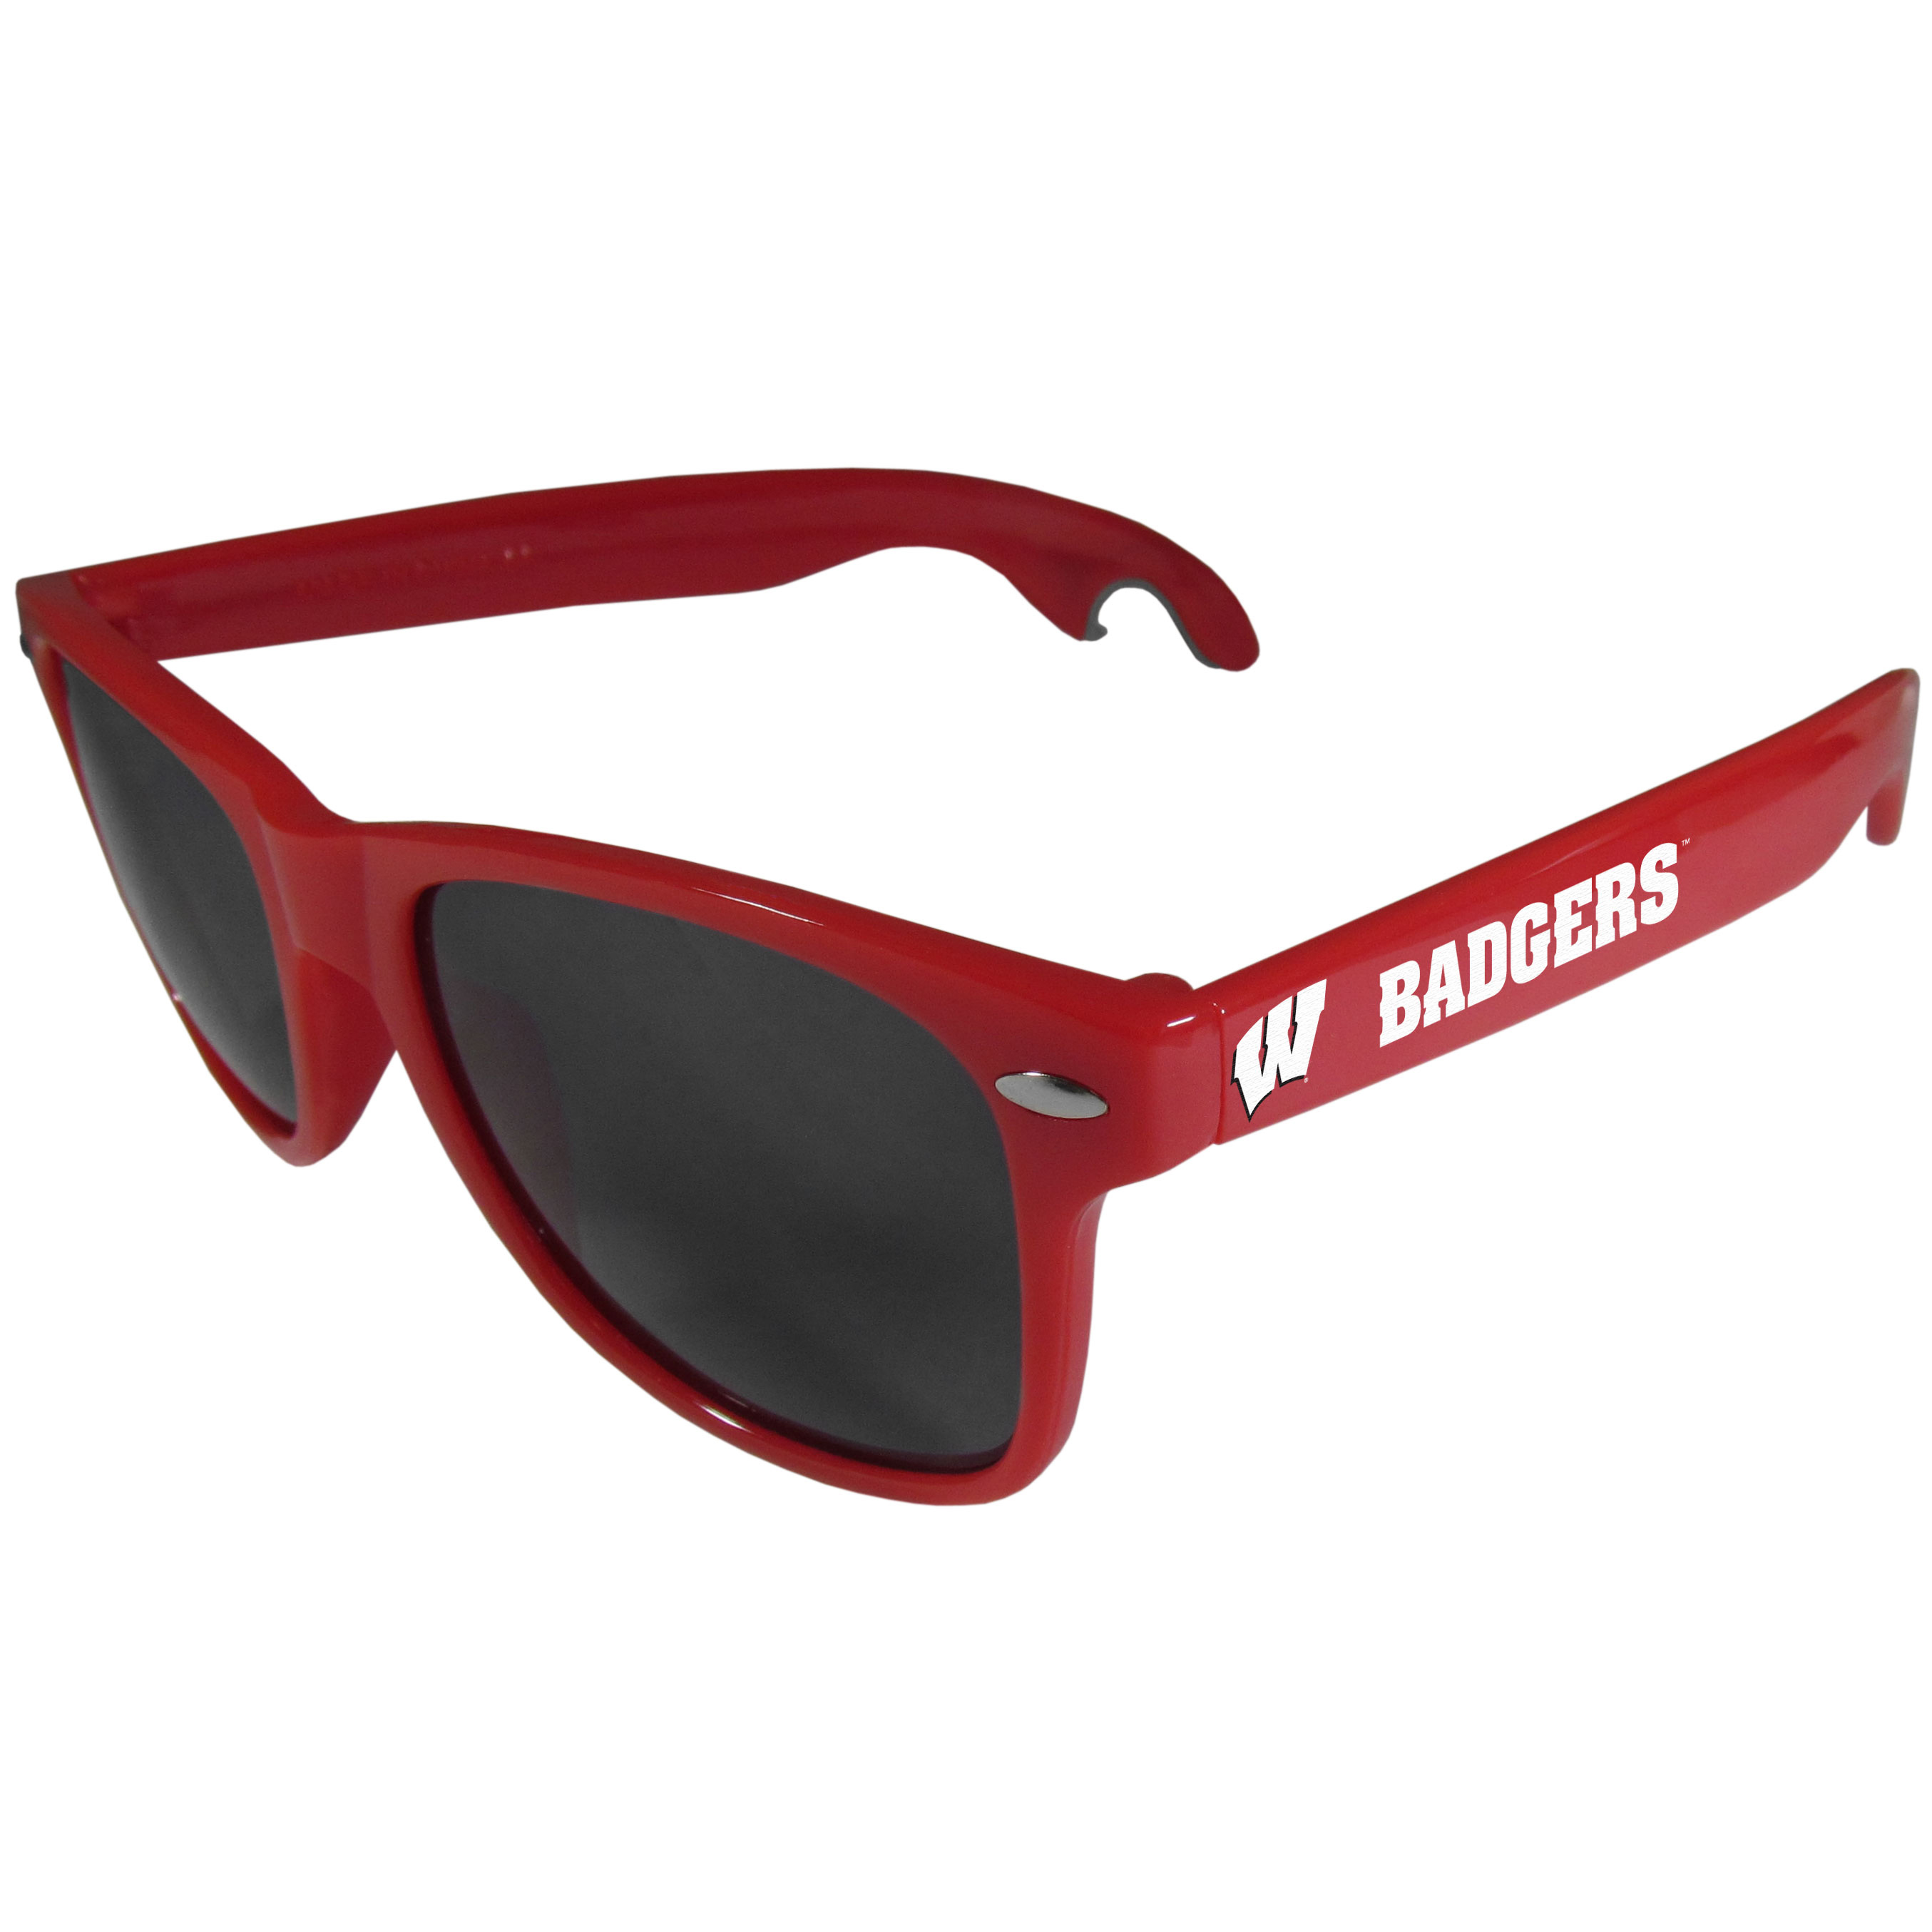 Wisconsin Badgers Beachfarer Bottle Opener Sunglasses, Red - Seriously, these sunglasses open bottles! Keep the party going with these amazing Wisconsin Badgers bottle opener sunglasses. The stylish retro frames feature team designs on the arms and functional bottle openers on the end of the arms. Whether you are at the beach or having a backyard BBQ on game day, these shades will keep your eyes protected with 100% UVA/UVB protection and keep you hydrated with the handy bottle opener arms.